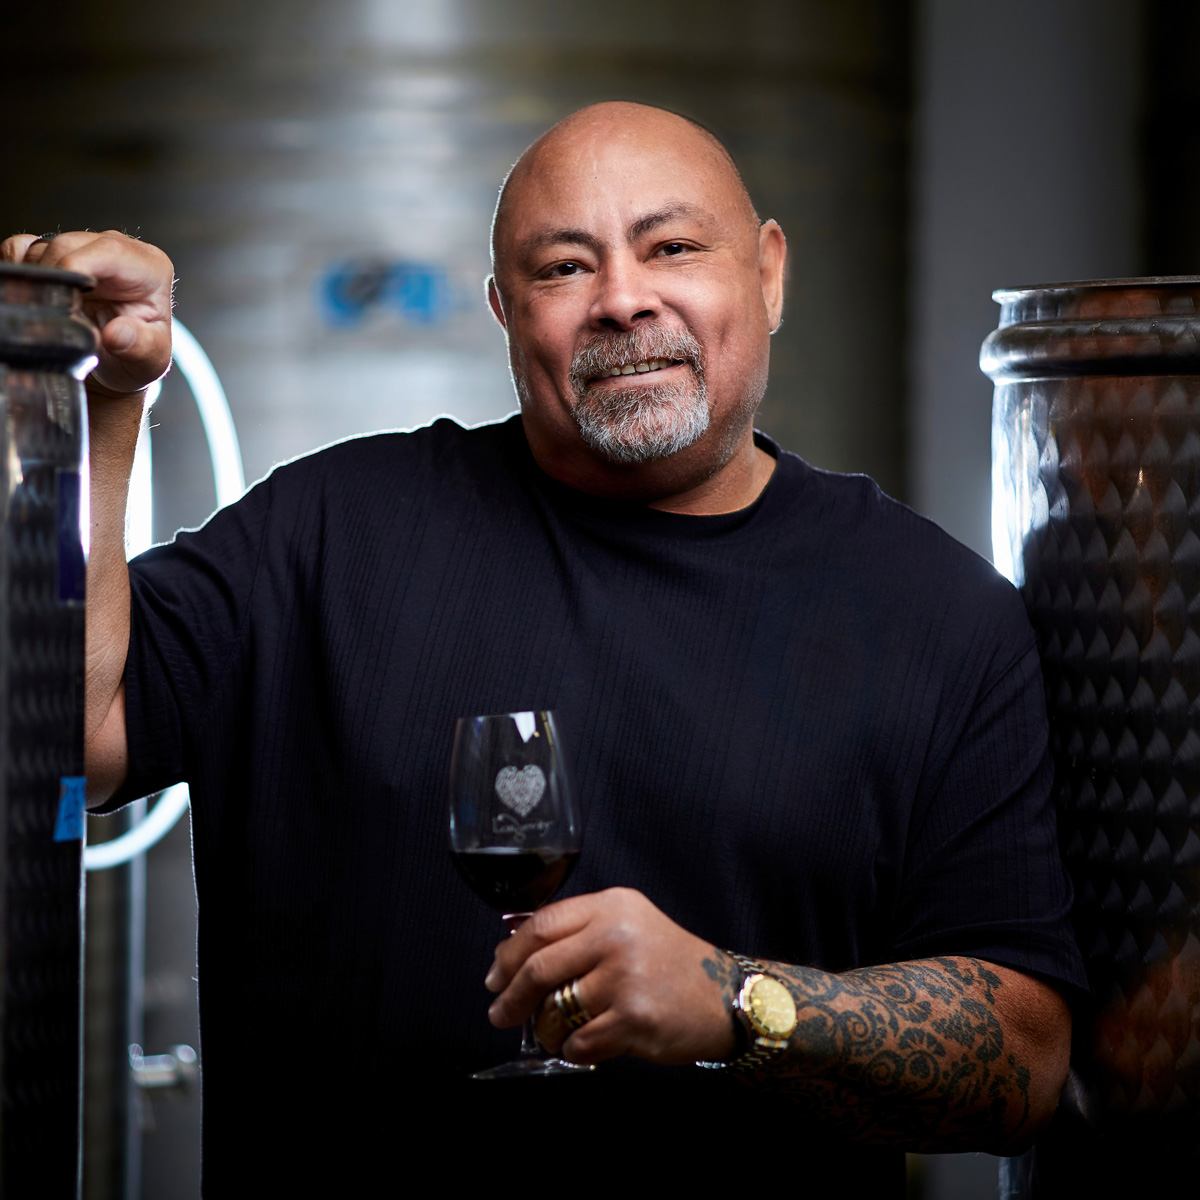 NOLADrinks Show – Association of African American Vintners – Aug20Ep1 – Phil Long, President of the African American Vintners and owner/winemaker of Longevity Wines.